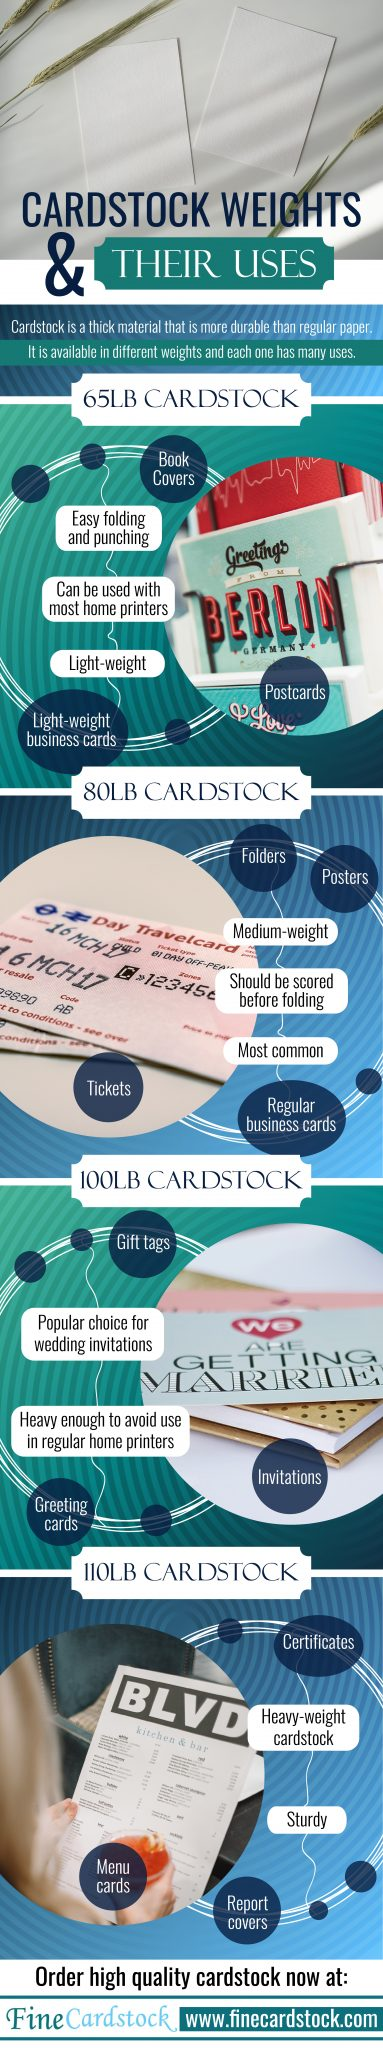 Image showing infographic about Bulk and Wholesale cardstock